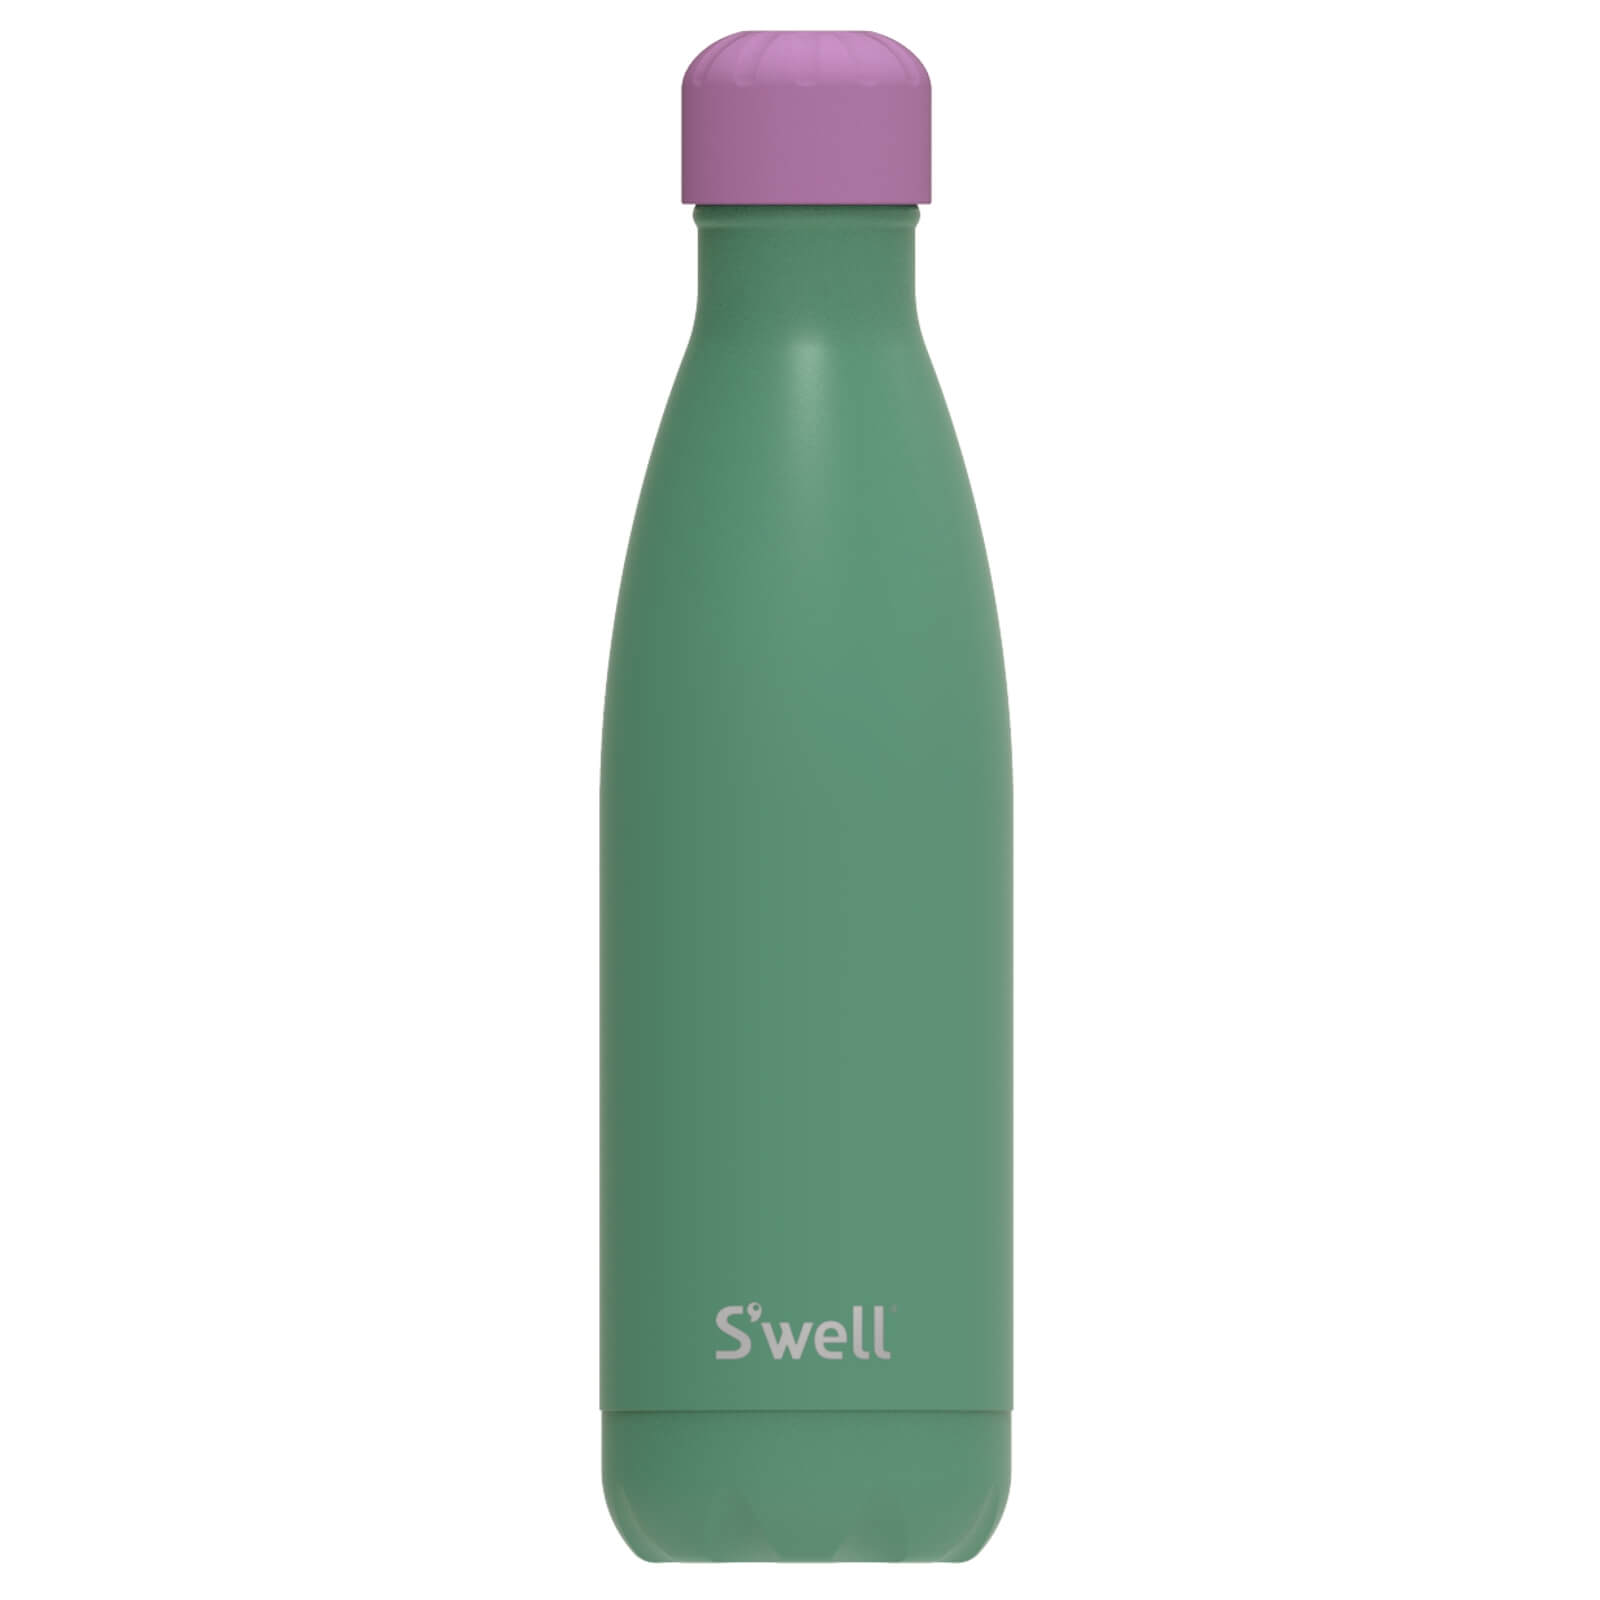 S'well Love You So Matcha Water Bottle - 500ml